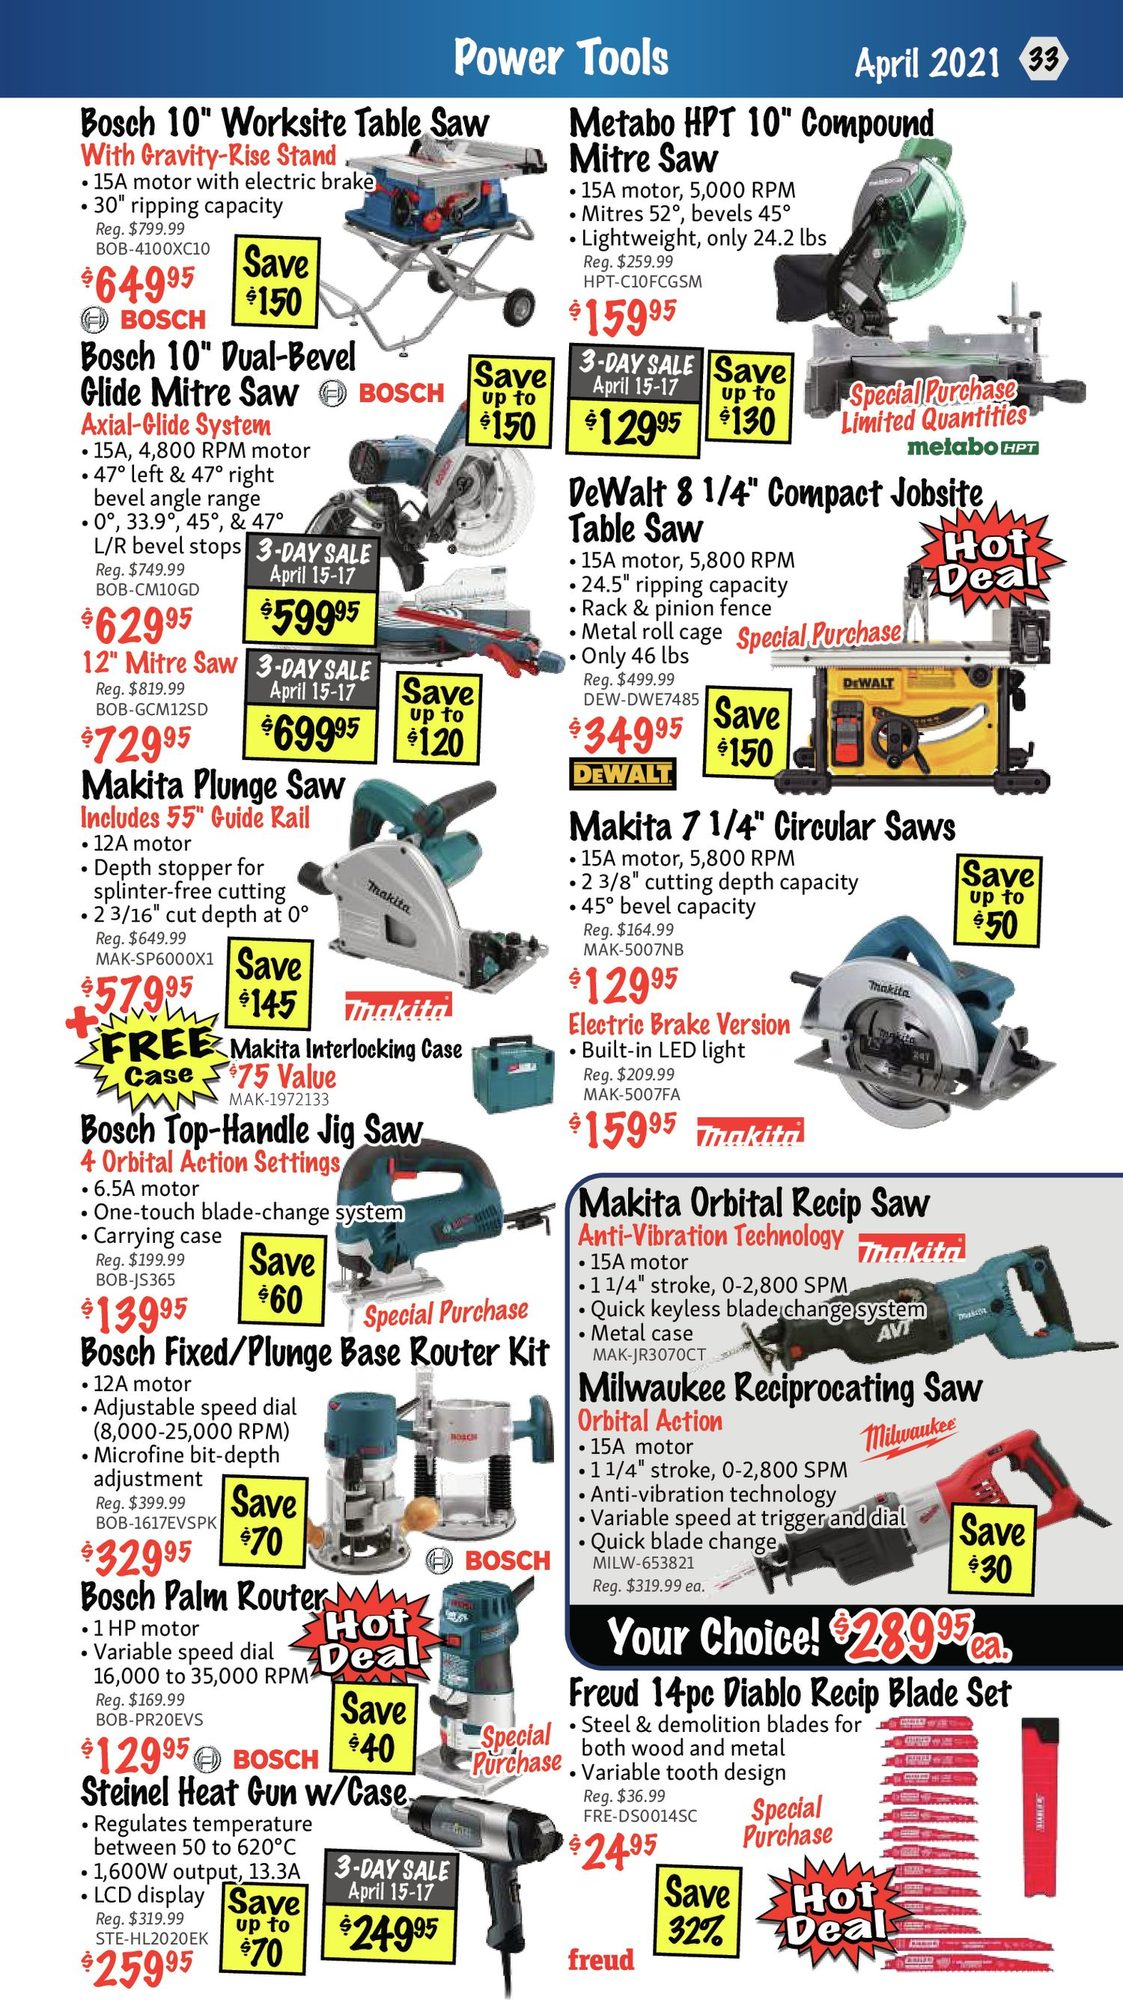 KMS Tools - Hand Tools, Air Tools & Compressor Sale - Page 33